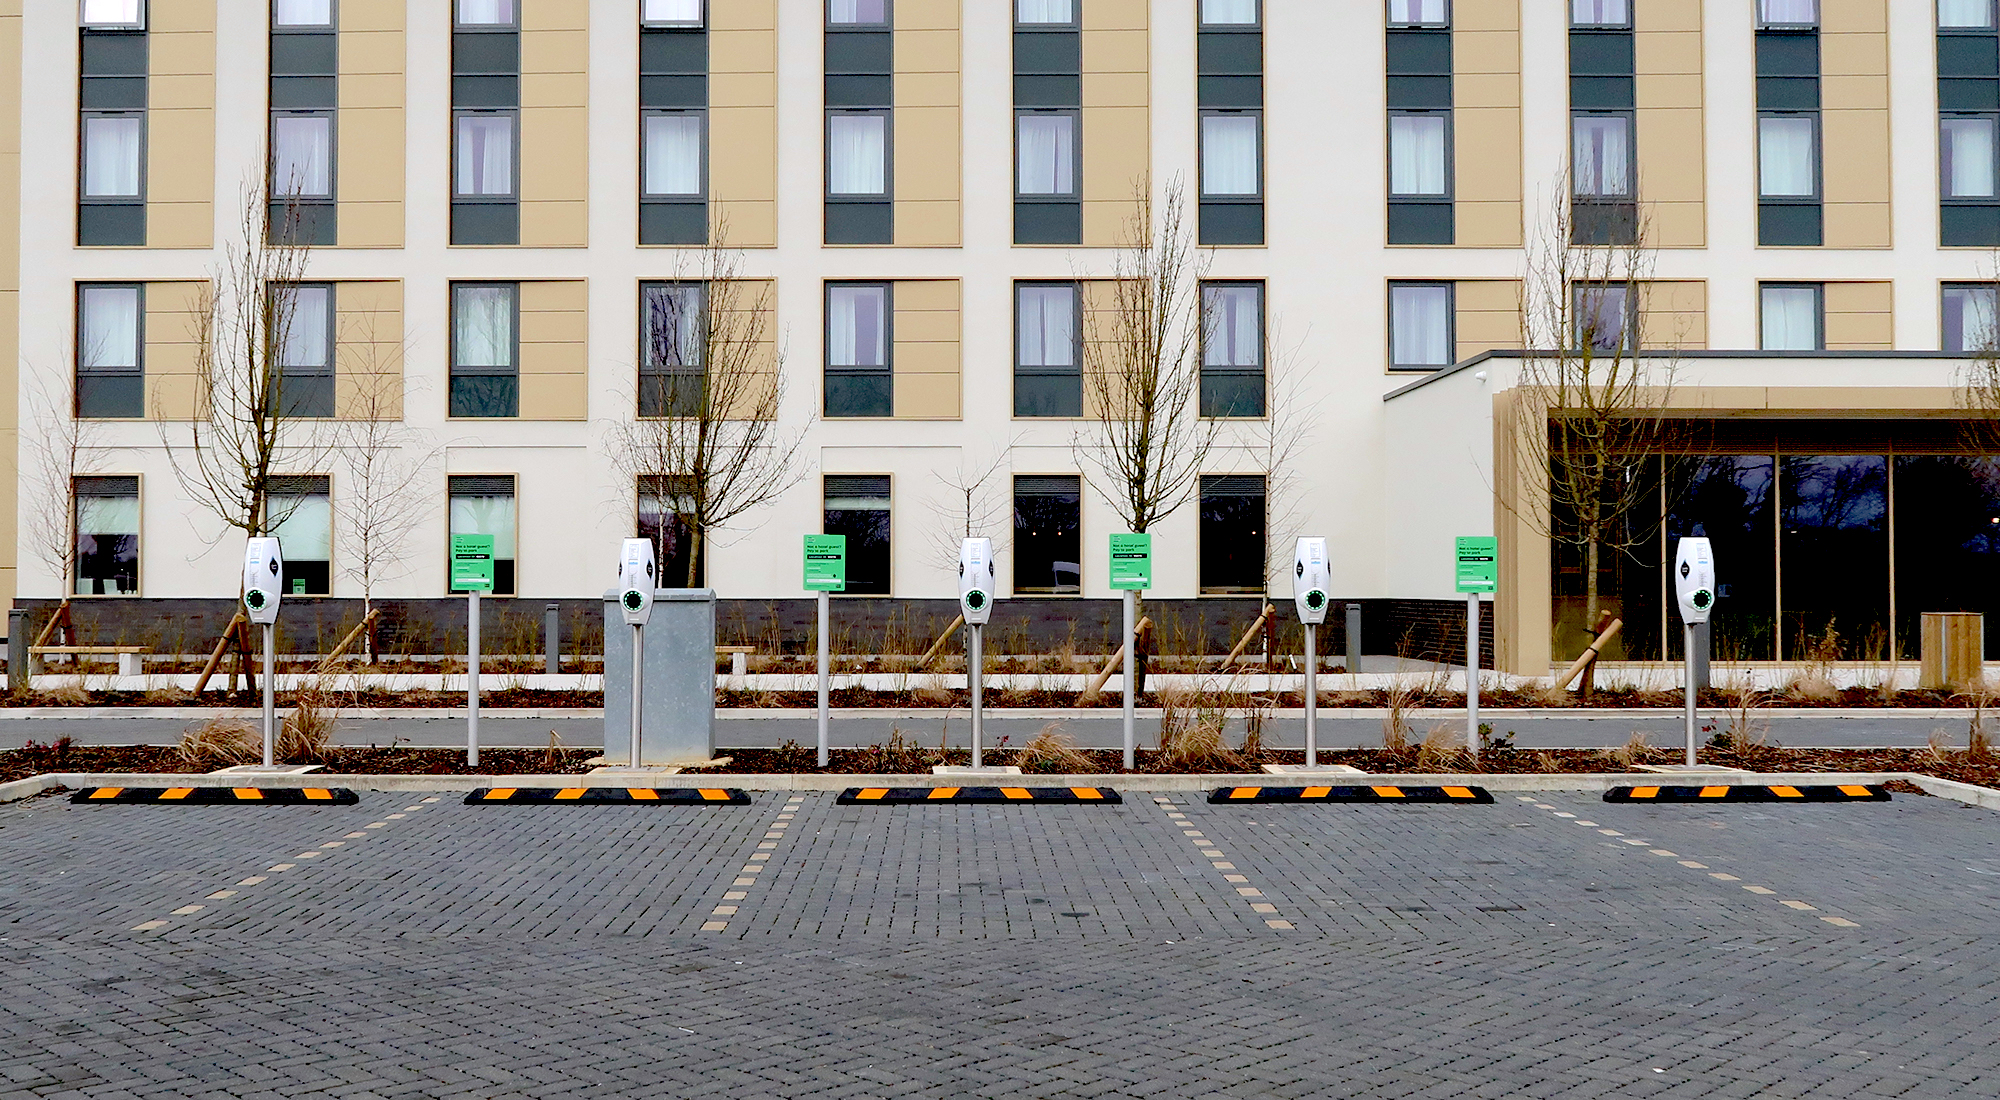 EVBox BusinessLines at the Holiday Inn Express in Bicester